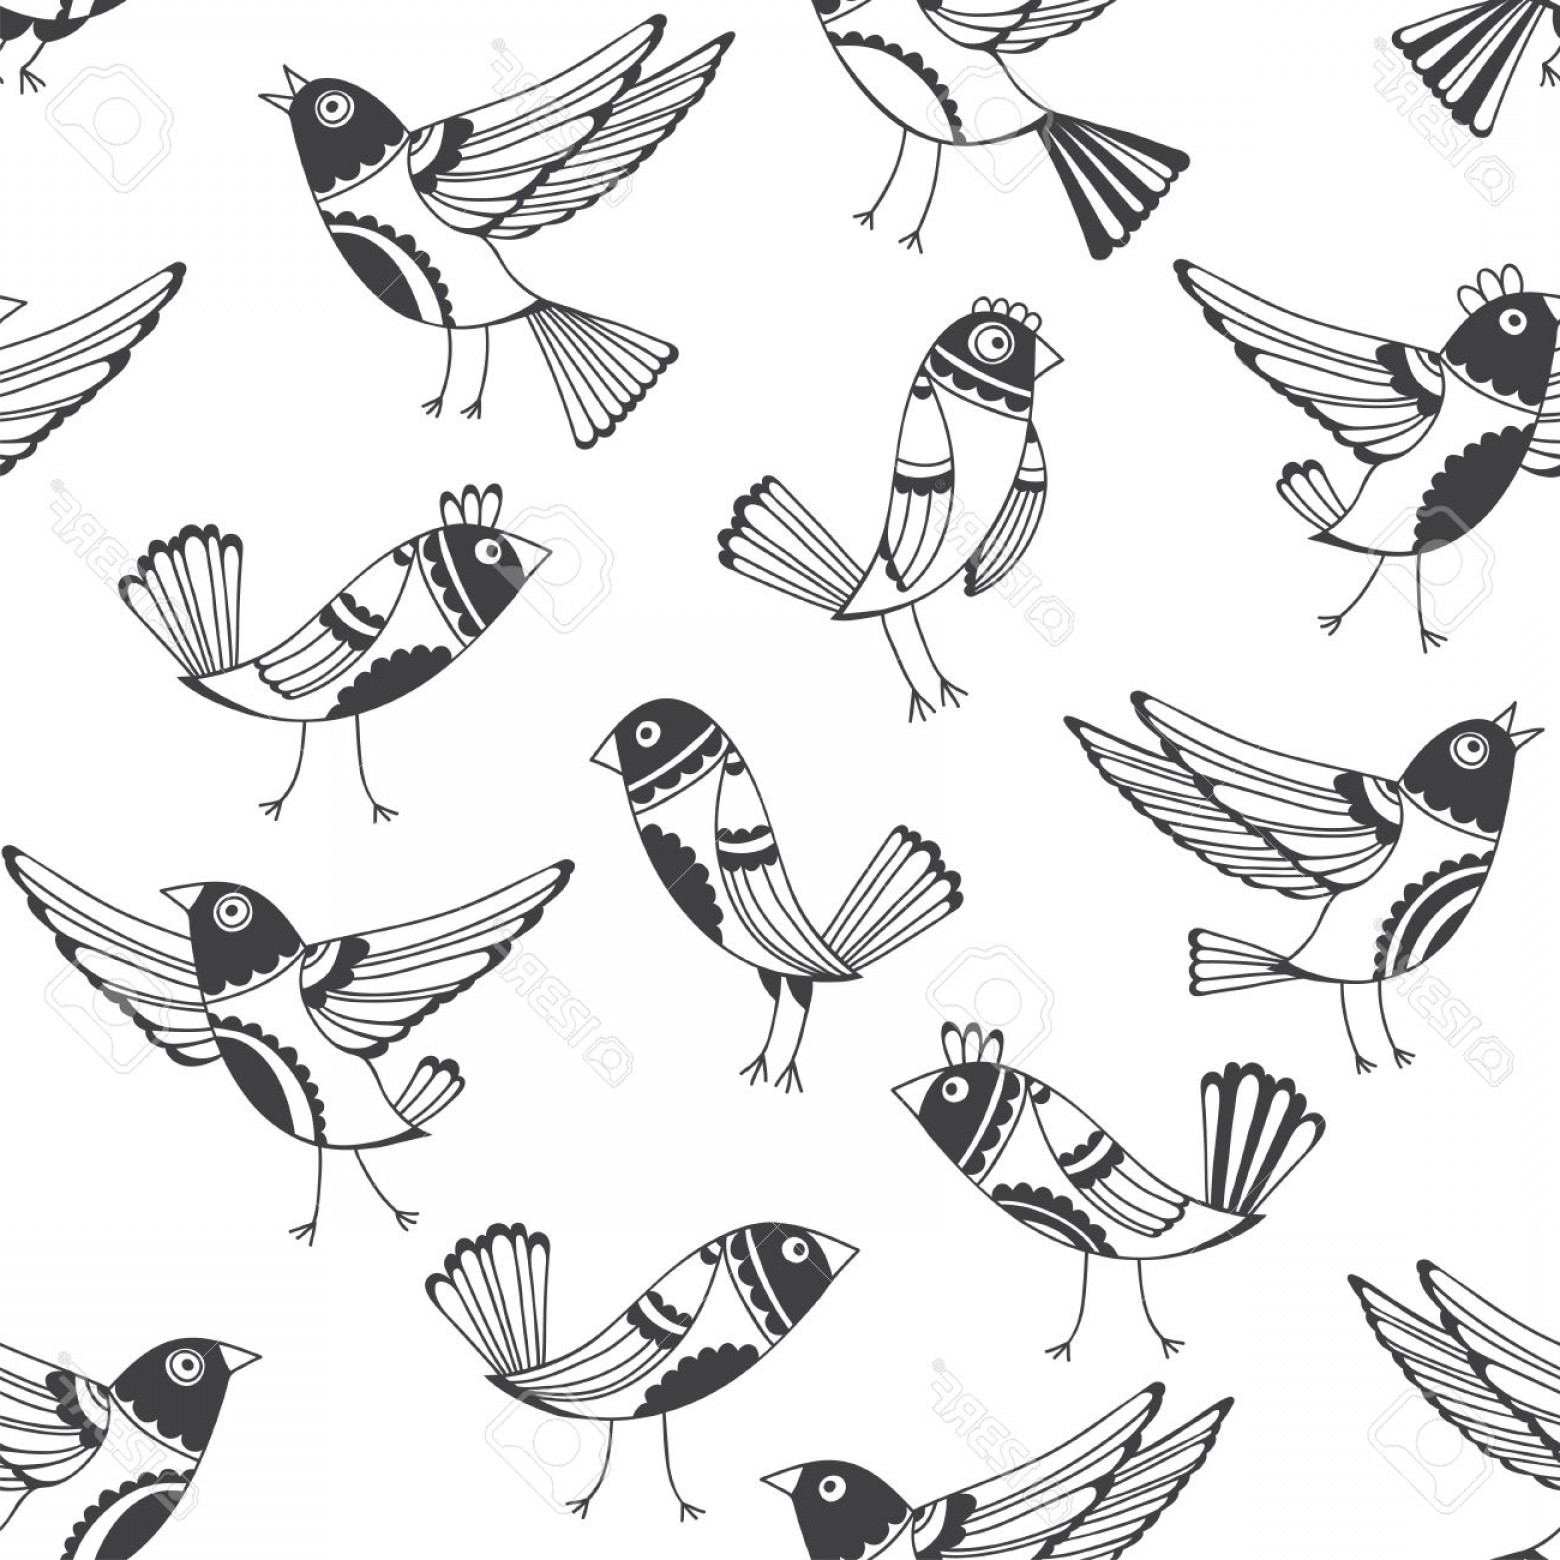 Bird In -Flight Vector Image: Photostock Vector Black And White Seamless Pattern With Cartoon Birds Vector Doodle Background With Cute Hand Drawn Bi